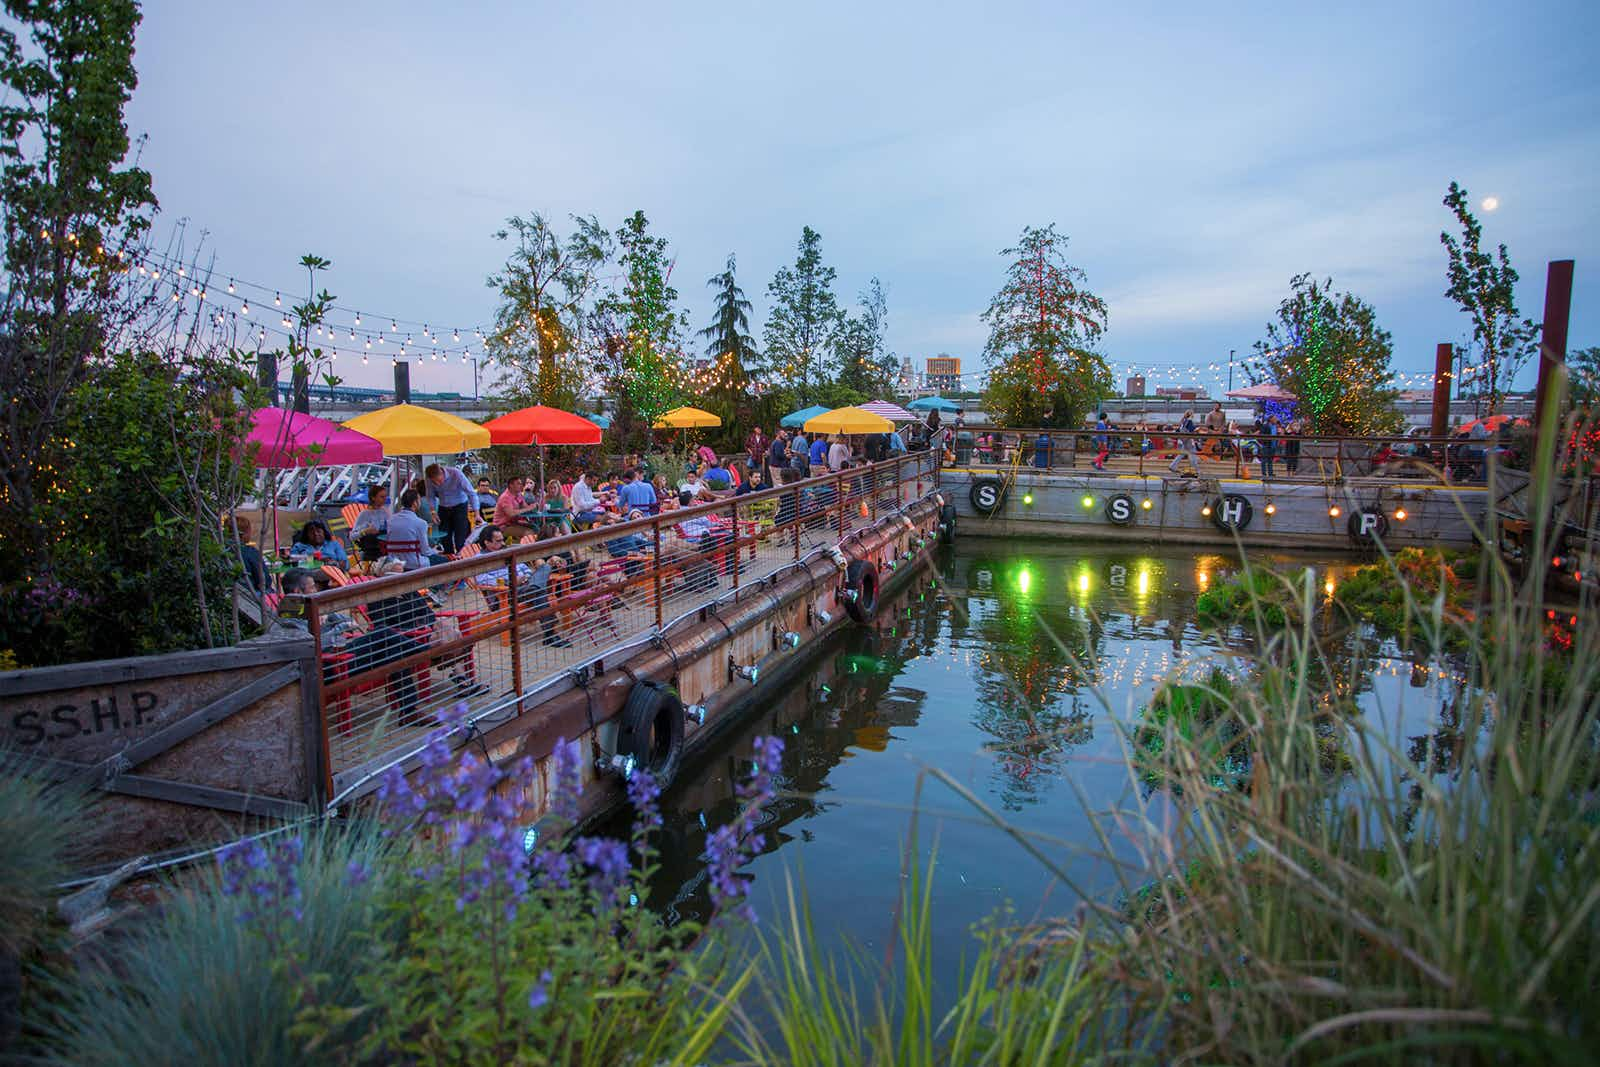 Long shot of park set up on docs on a river with red and yellow umbrellas over tables